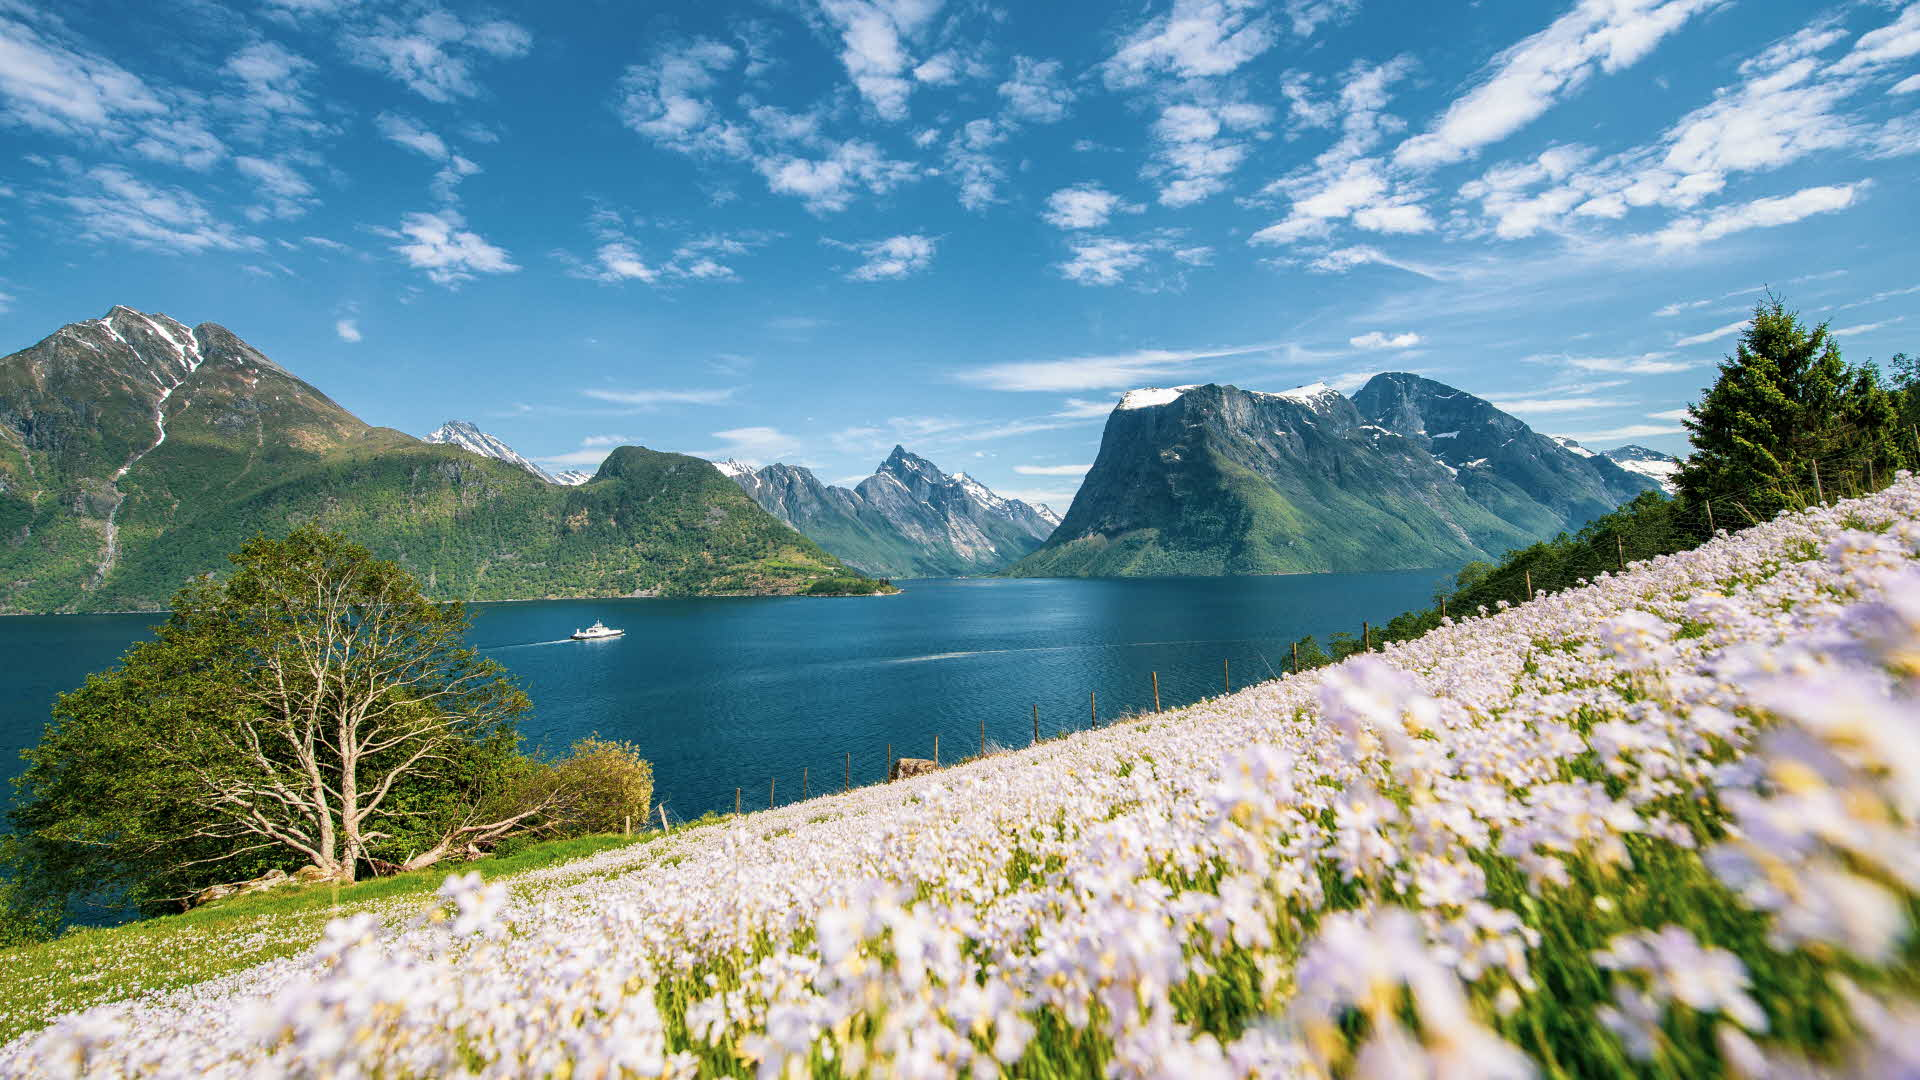 A boat sailing the Hjørundfjord, with a flowery meadow in the foreground and the Sunnmørsalpene range behind